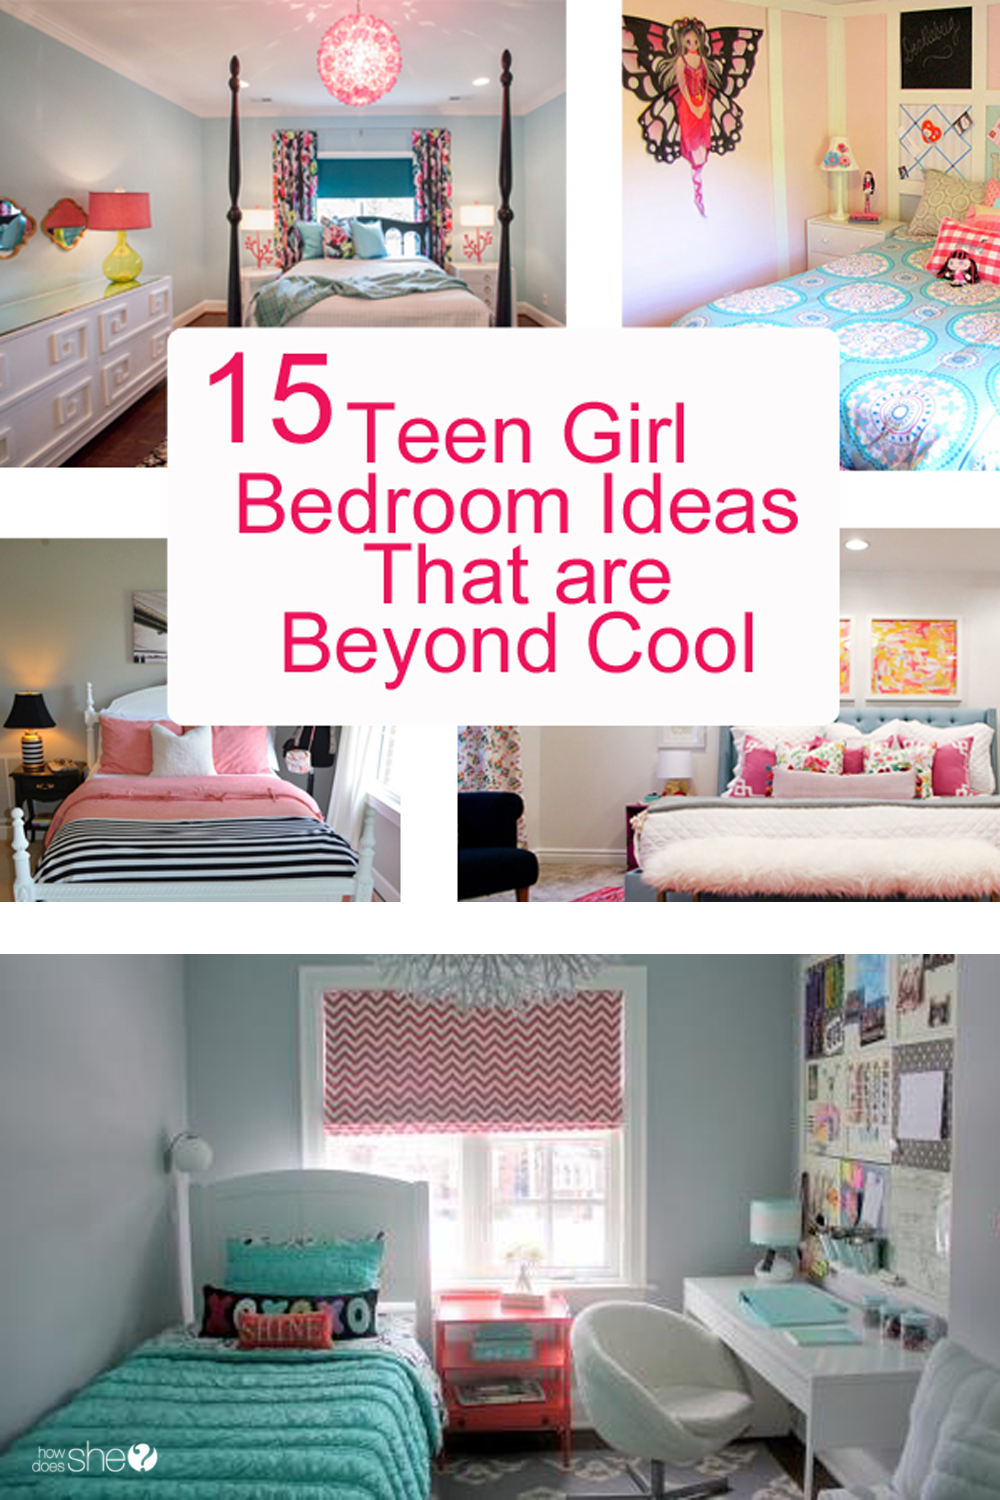 Teen Girl Bedroom Ideas - 15 Cool DIY Room Ideas For Teenage ...